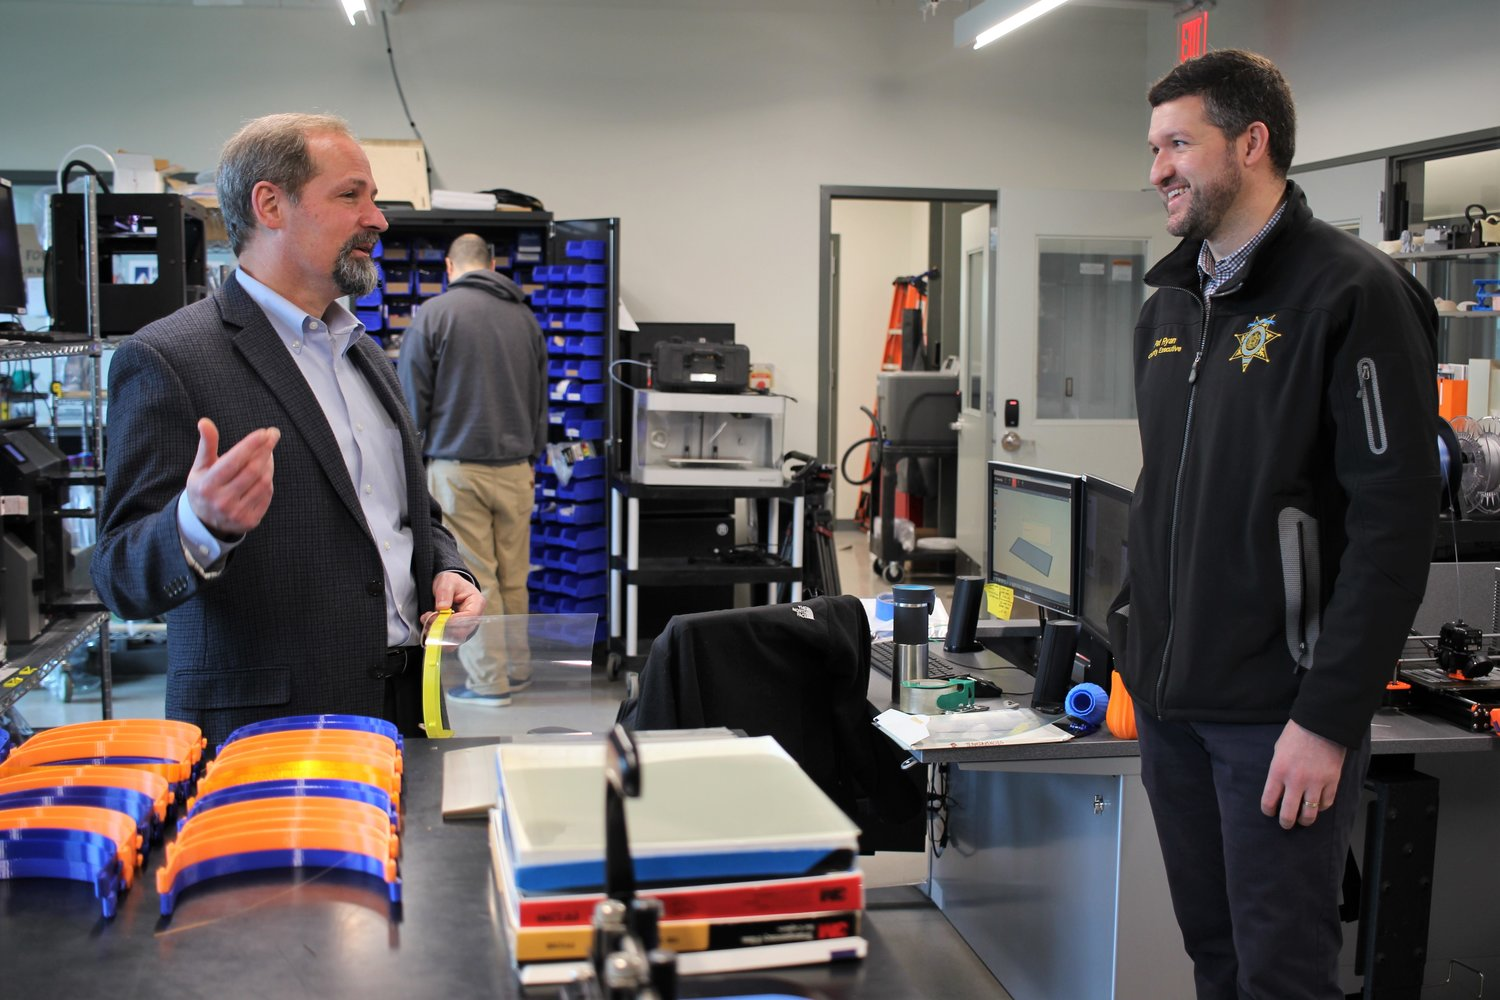 (From left to right) Director of the Hudson Valley Additive Manufacturing Center Dan Freedman and Ulster County Executive Pat Ryan.